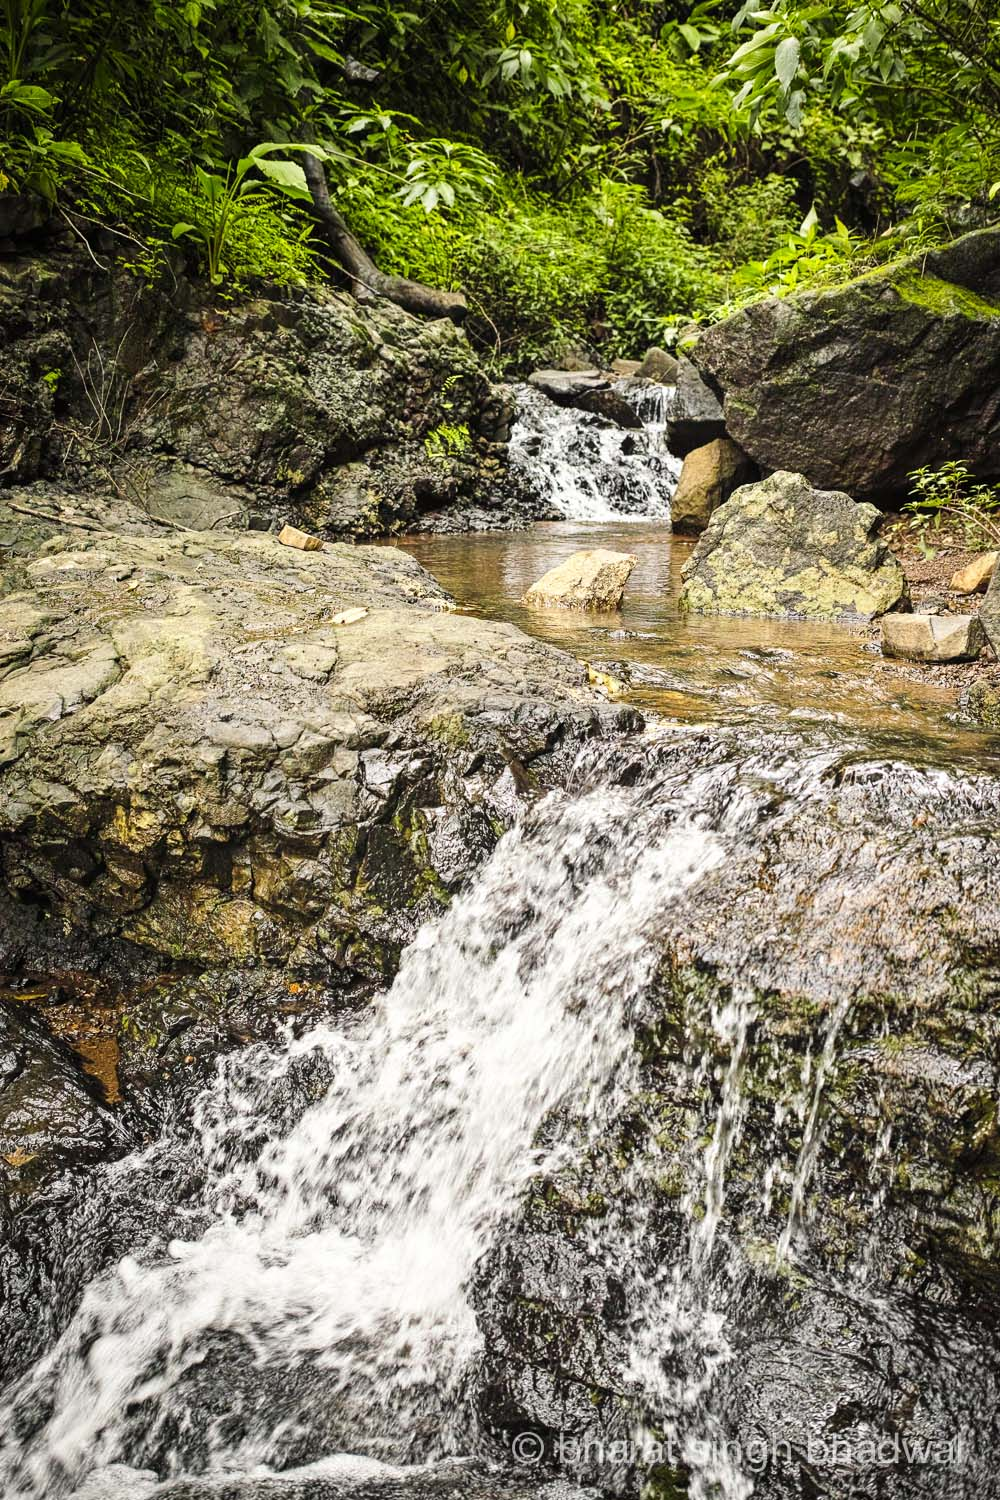 A gushing stair waterfall along the trekking trail